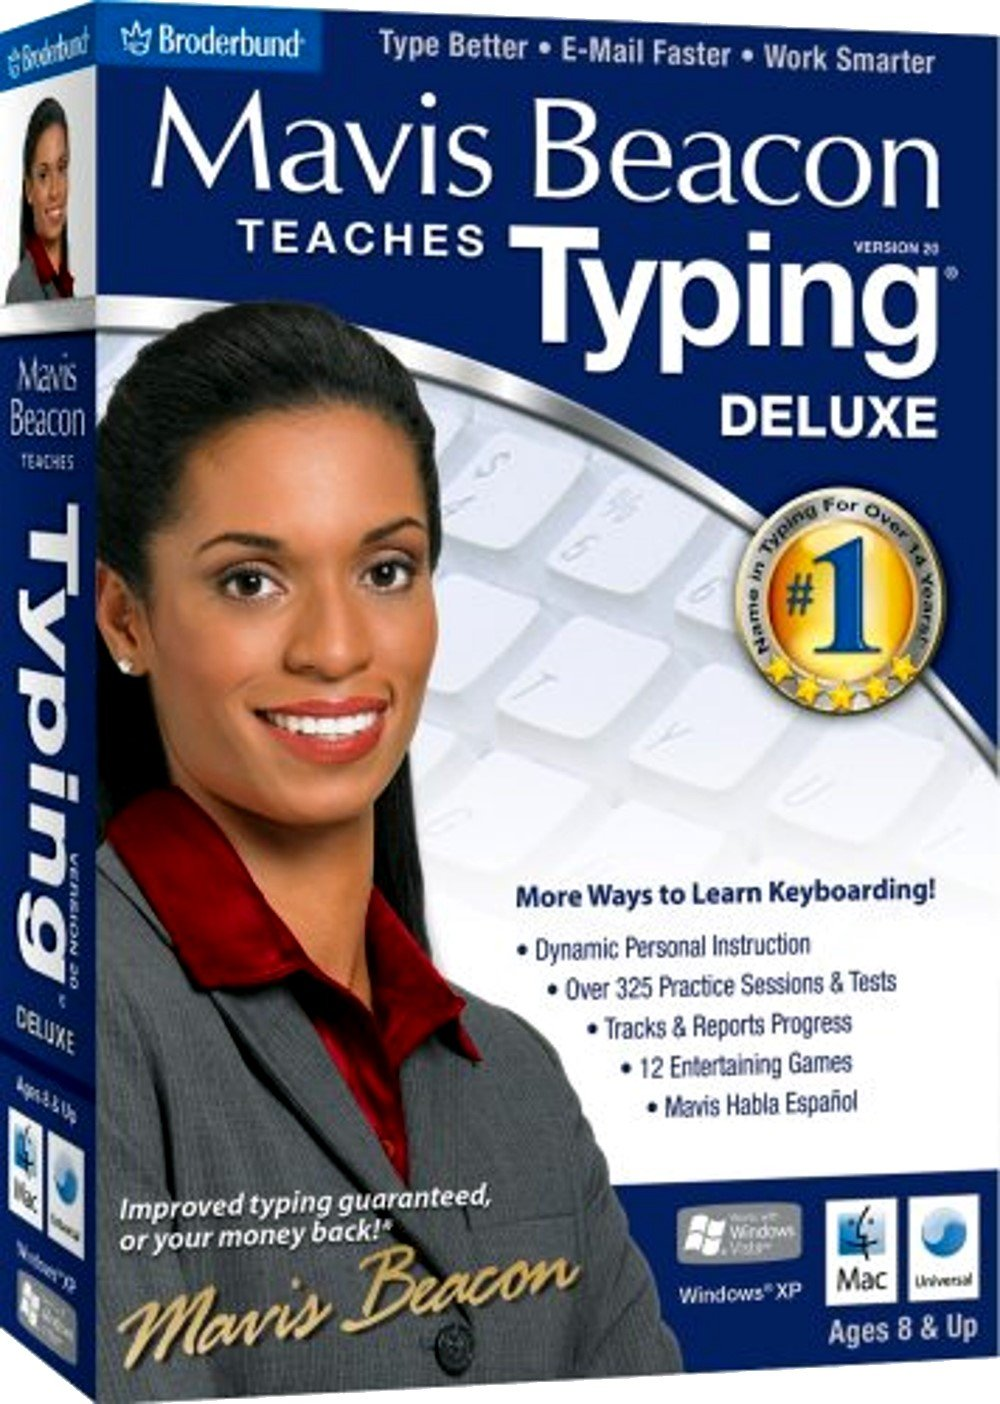 Mavis Beacon Teaches Typing Deluxe 20 - Old Version by Encore